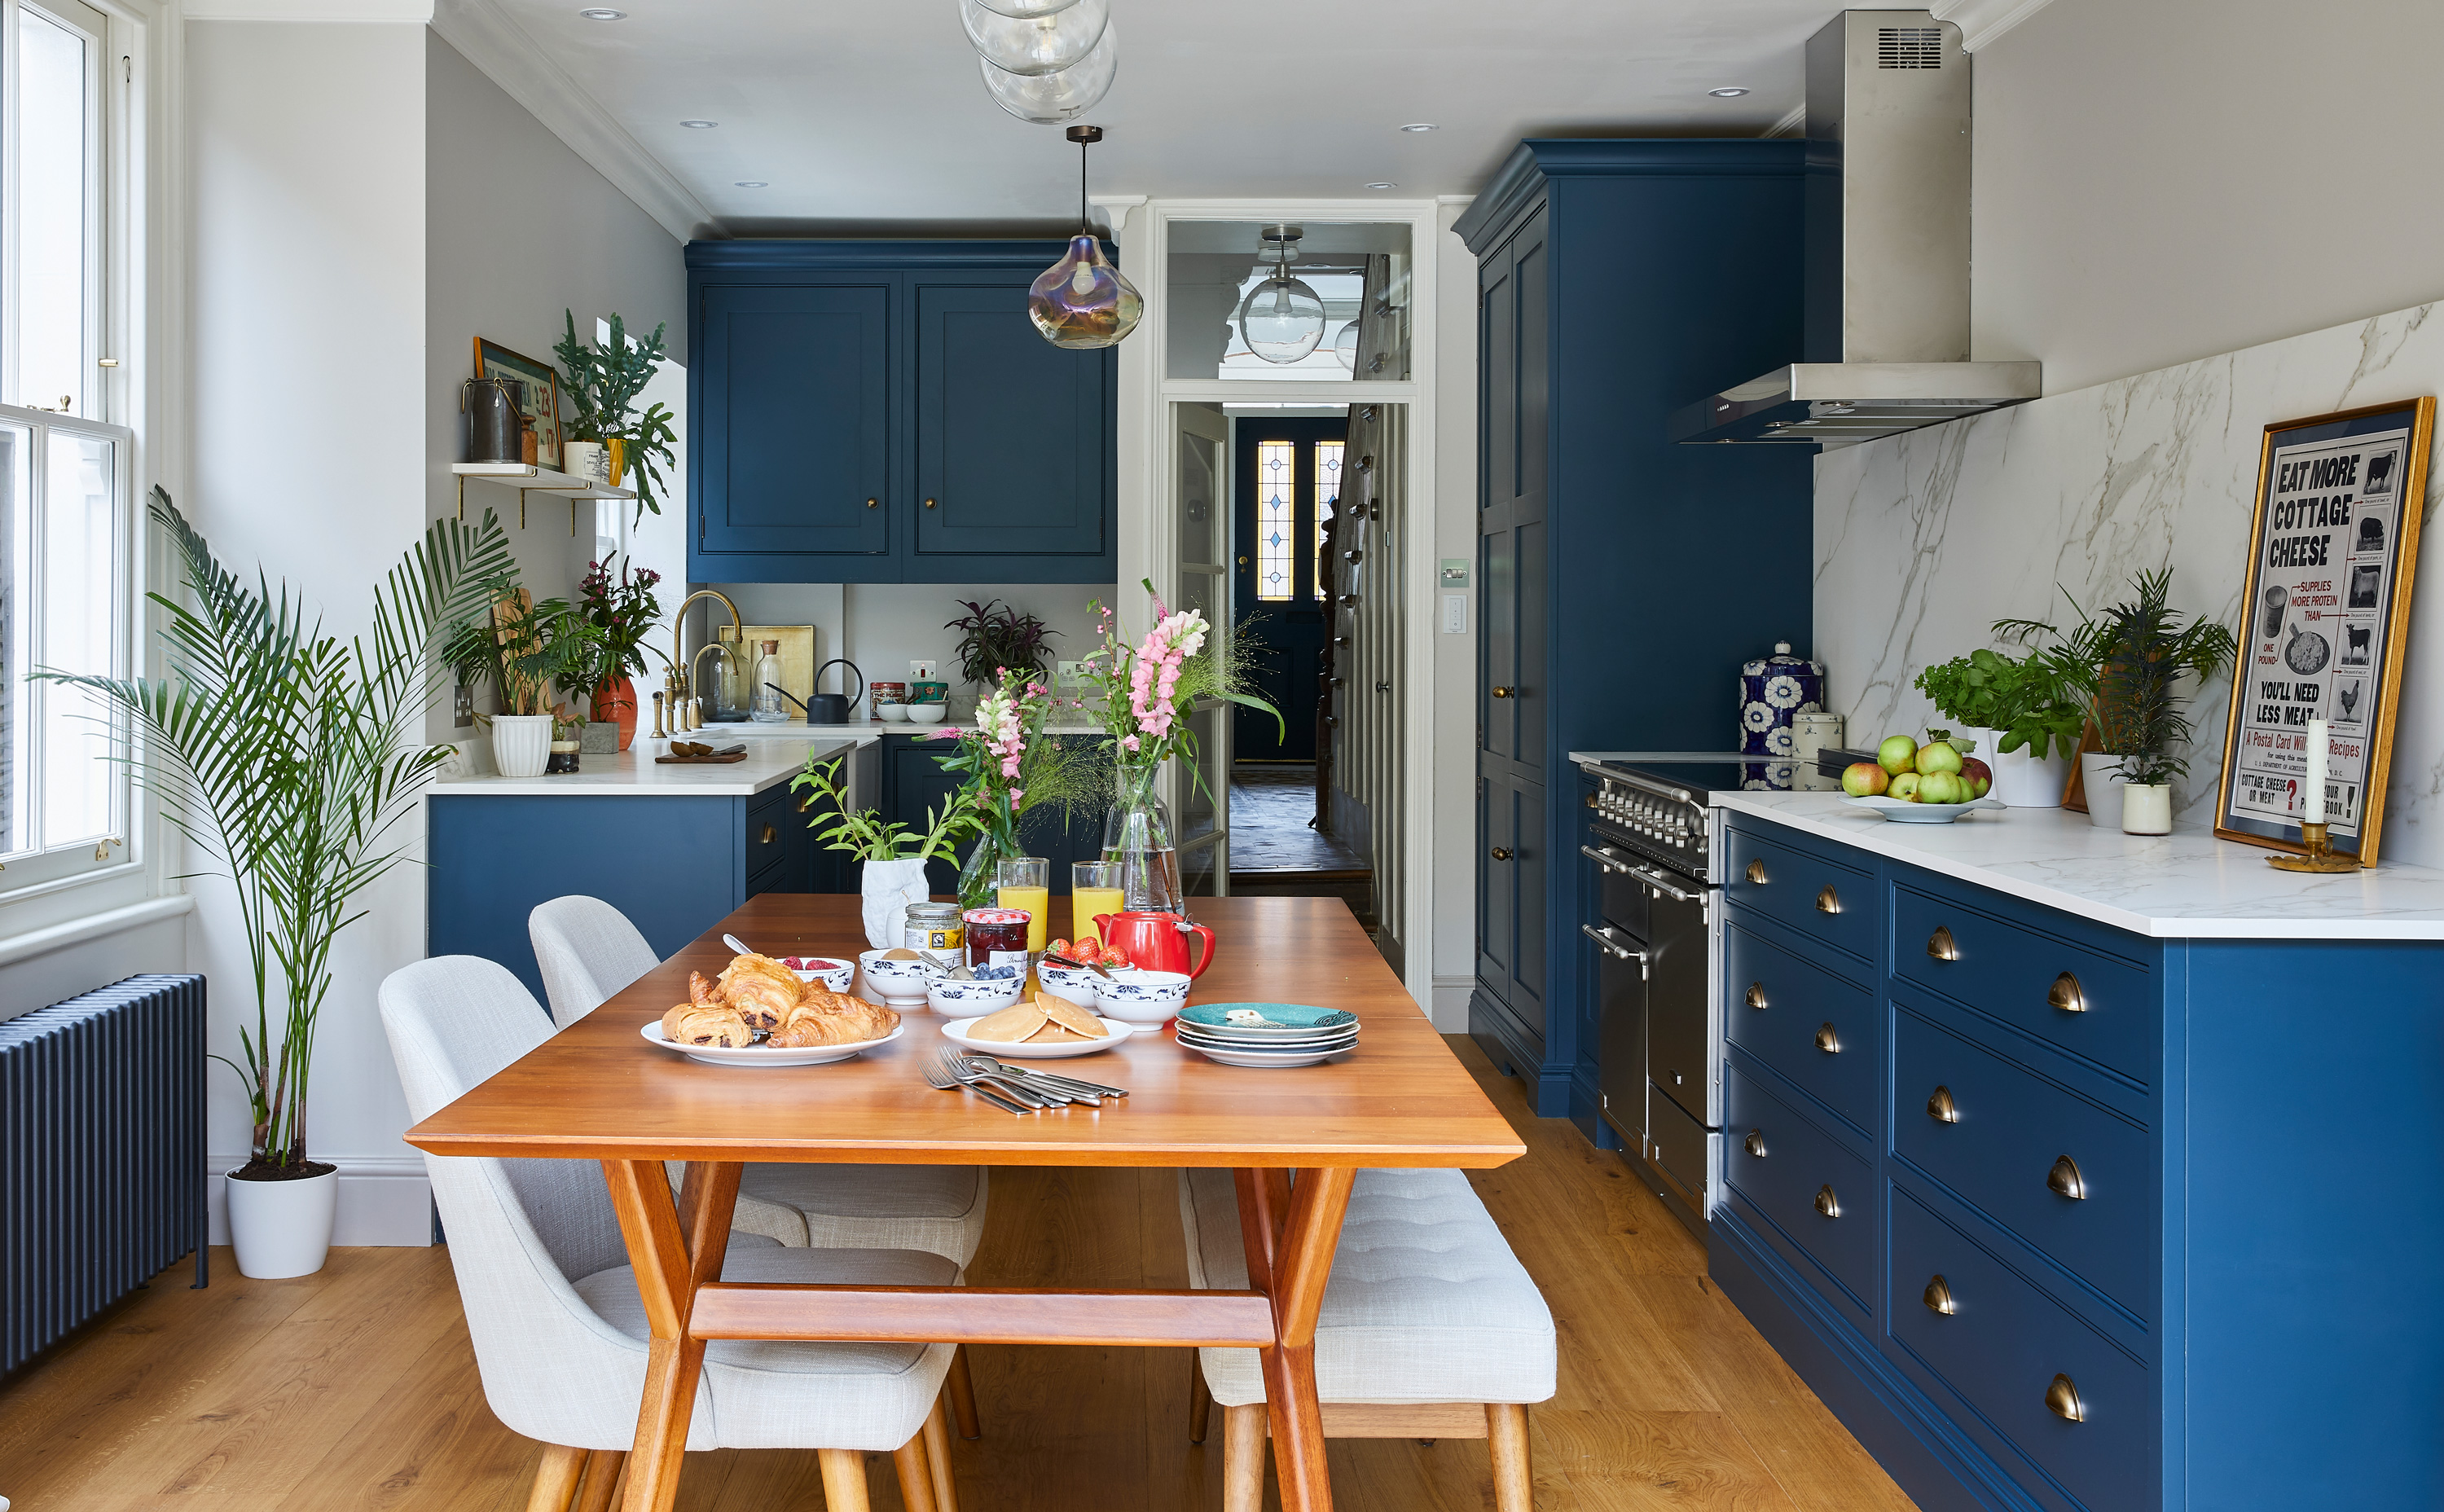 15 Blue Kitchen Ideas To Make You Want Try This On Trend Look Real Homes